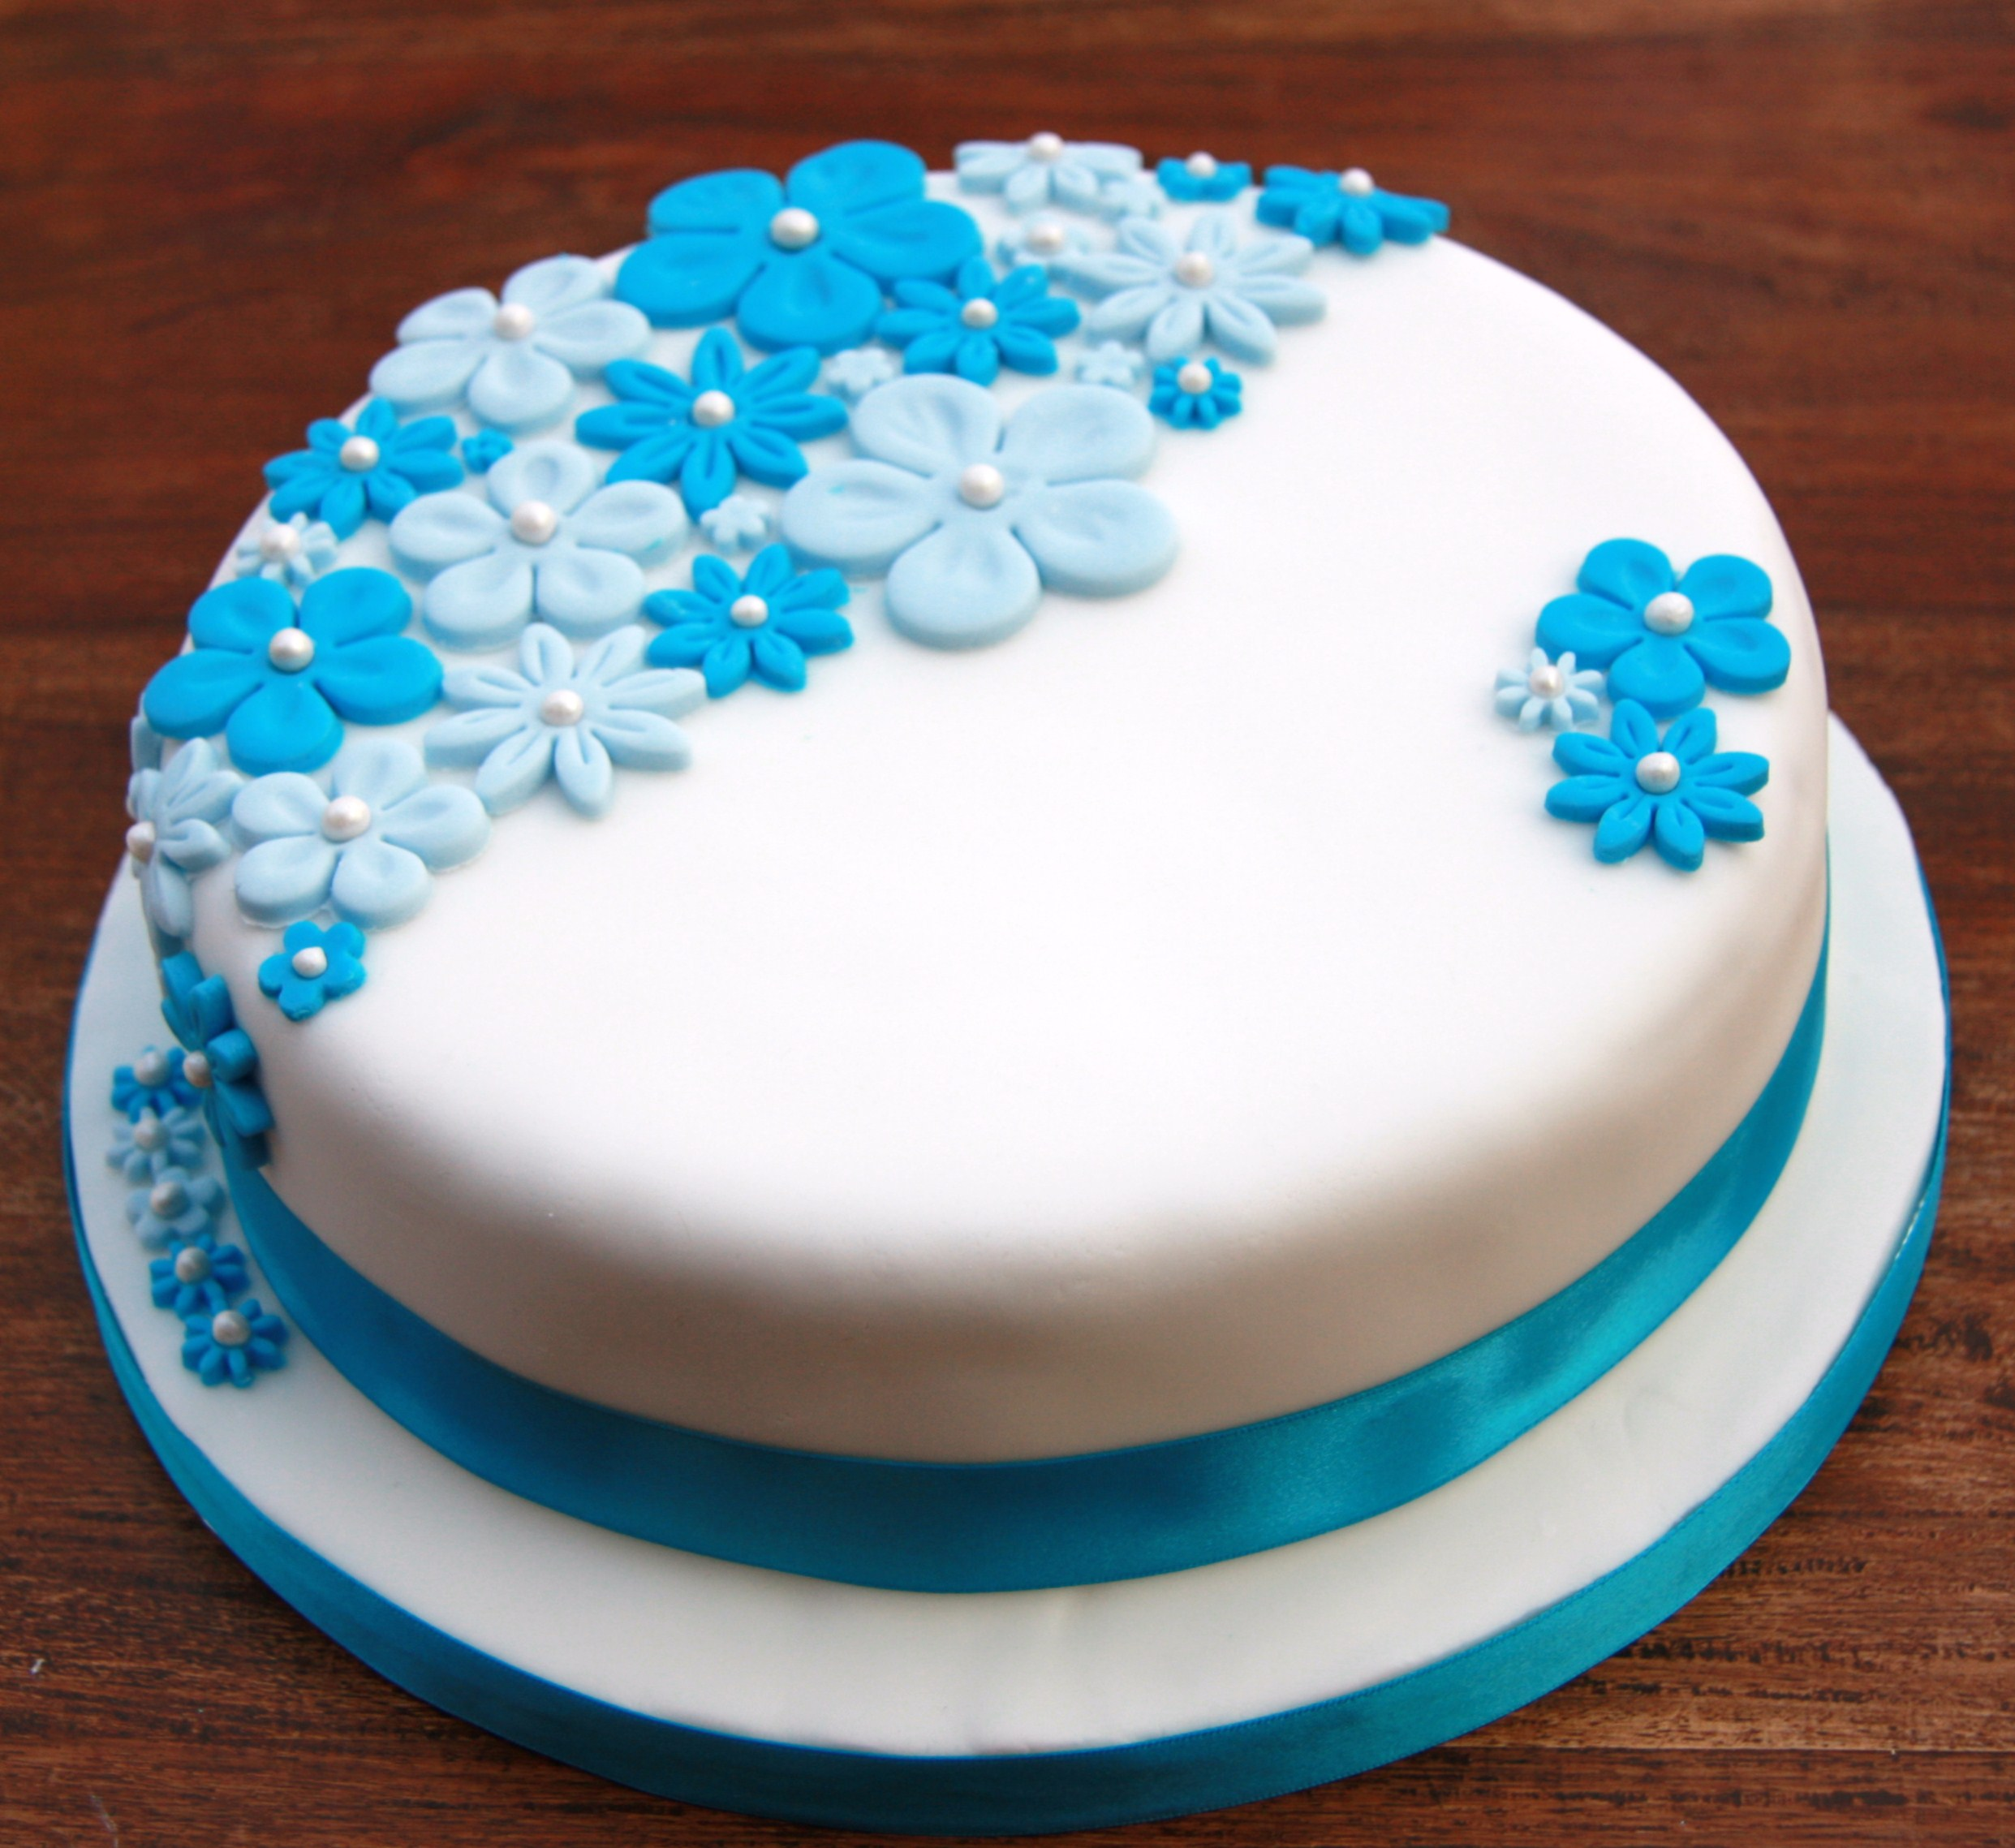 Birthday Cake Images Latest : Birthday Cake with Blue Flowers   lovinghomemade